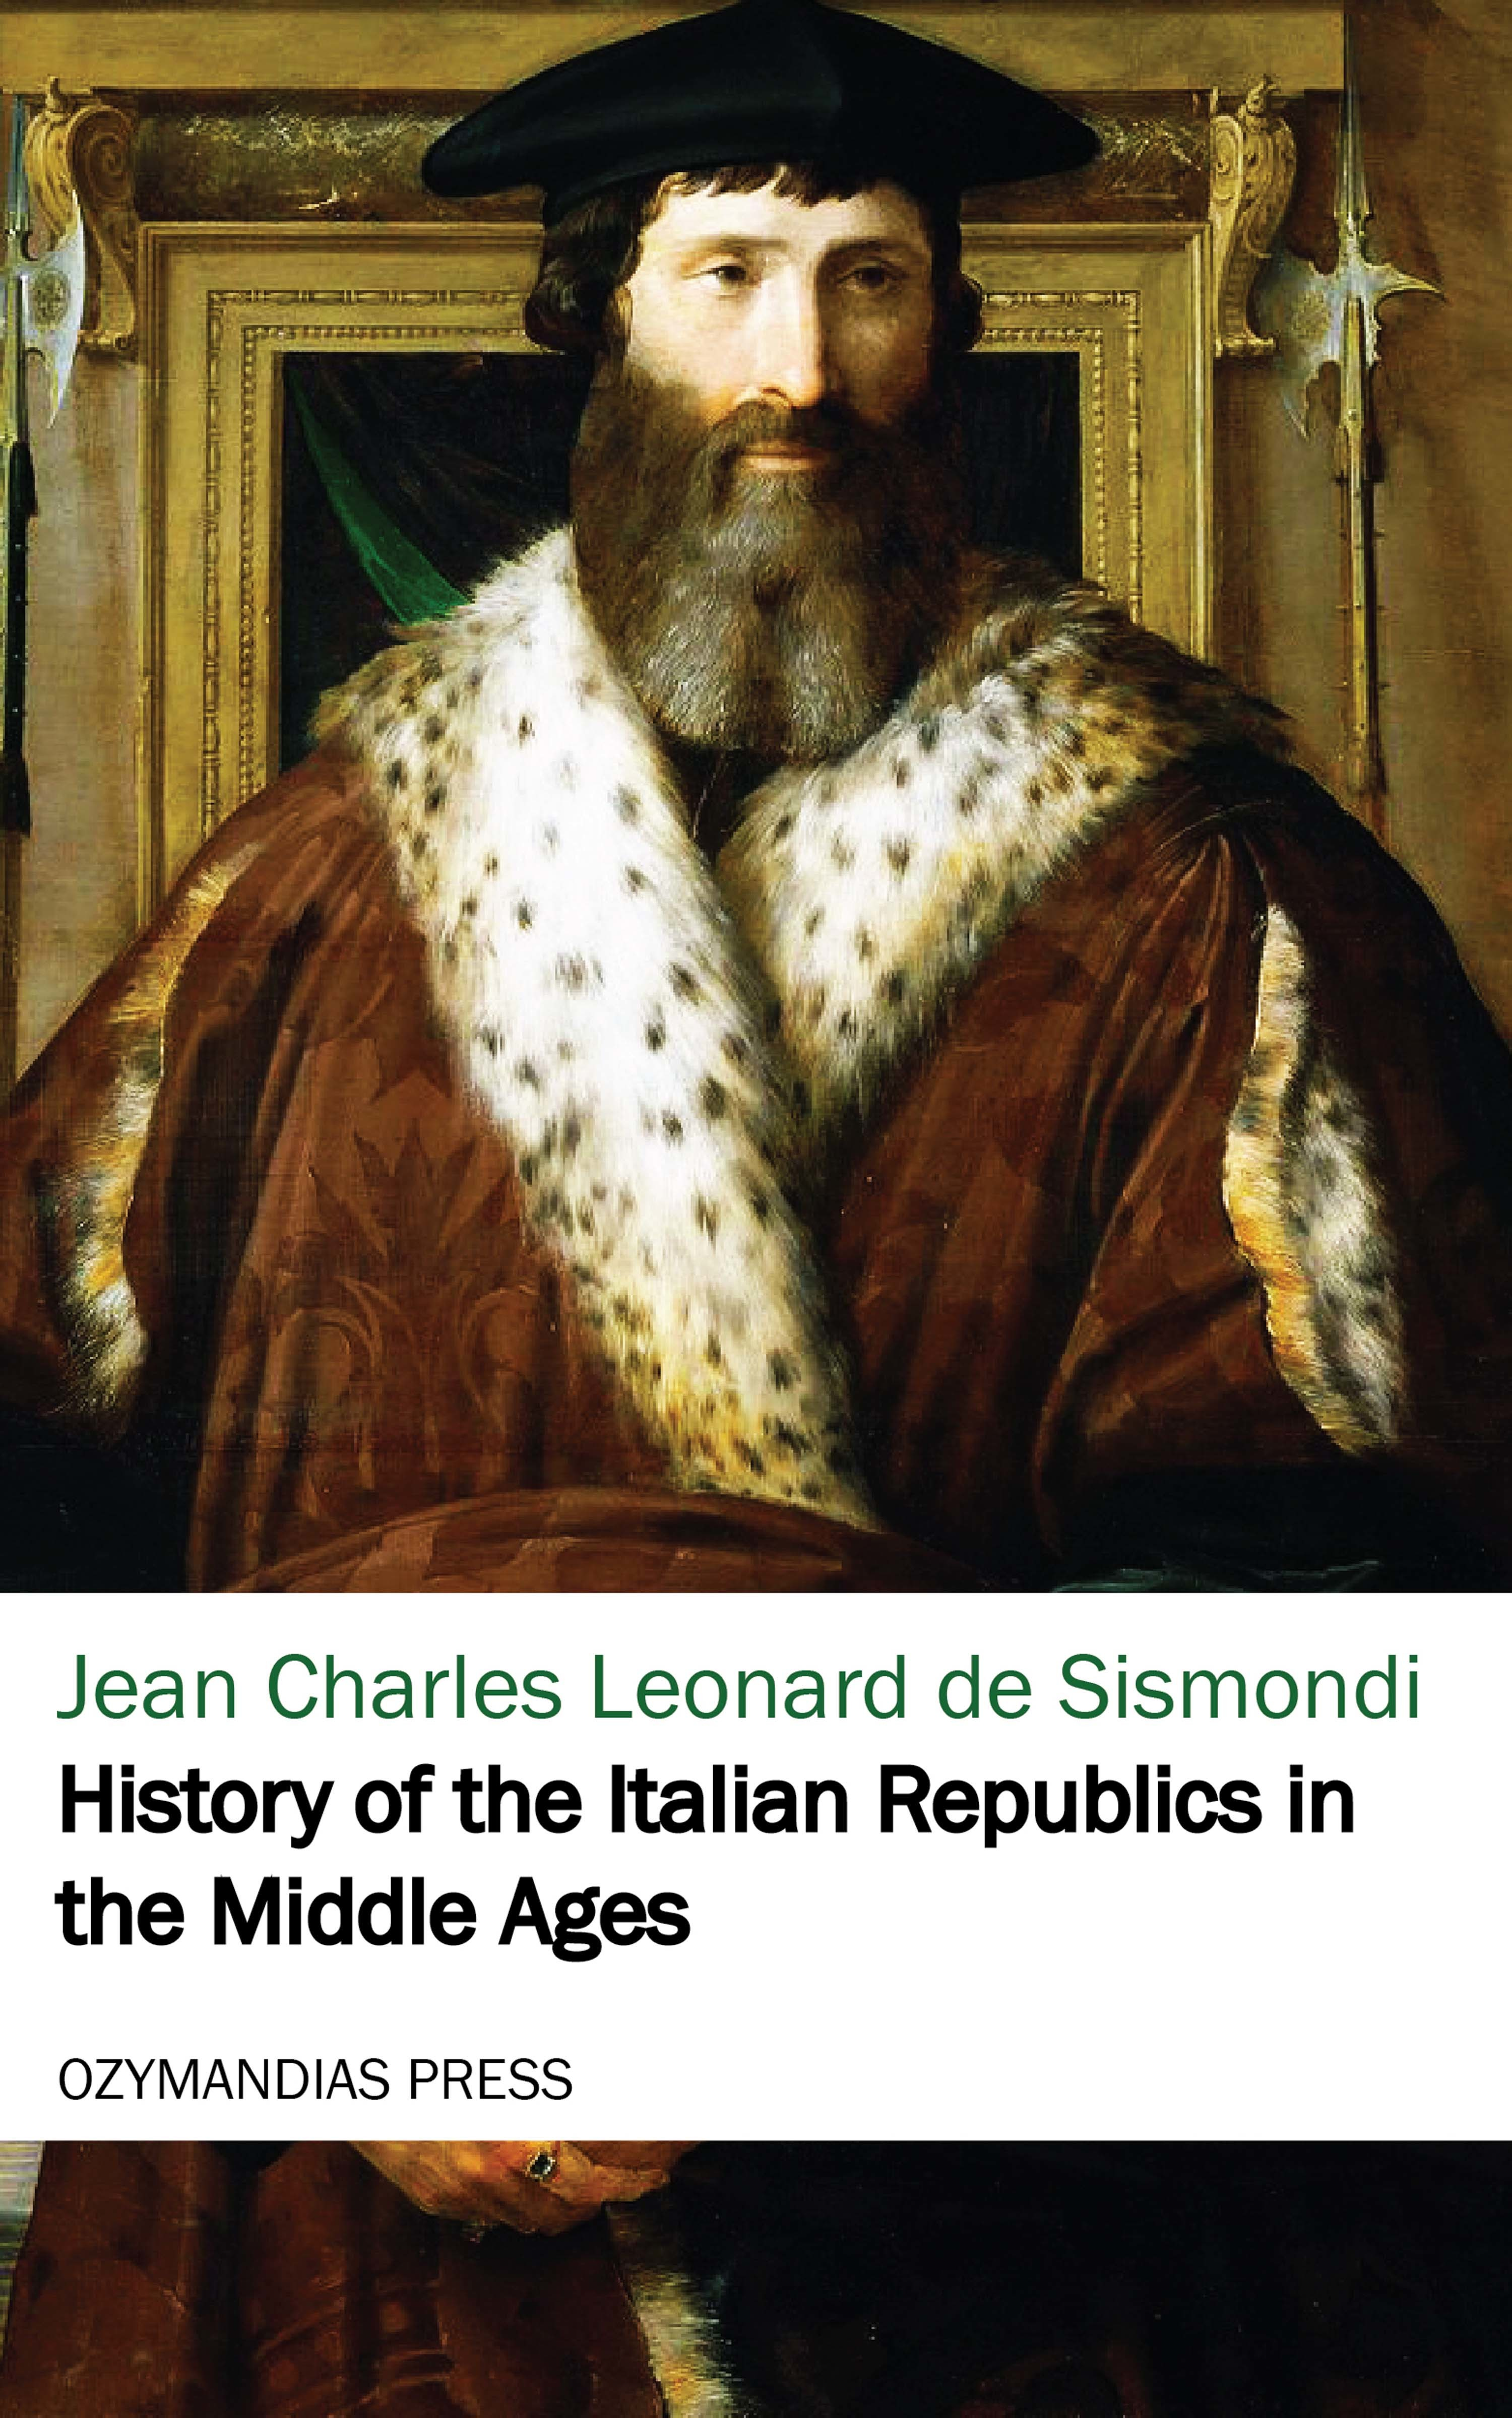 Jean Charles Leonard de Sismondi History of the Italian Republics in the Middle Ages ferdinando gregorovius history of the city of rome in the middle ages volume 5 page 2